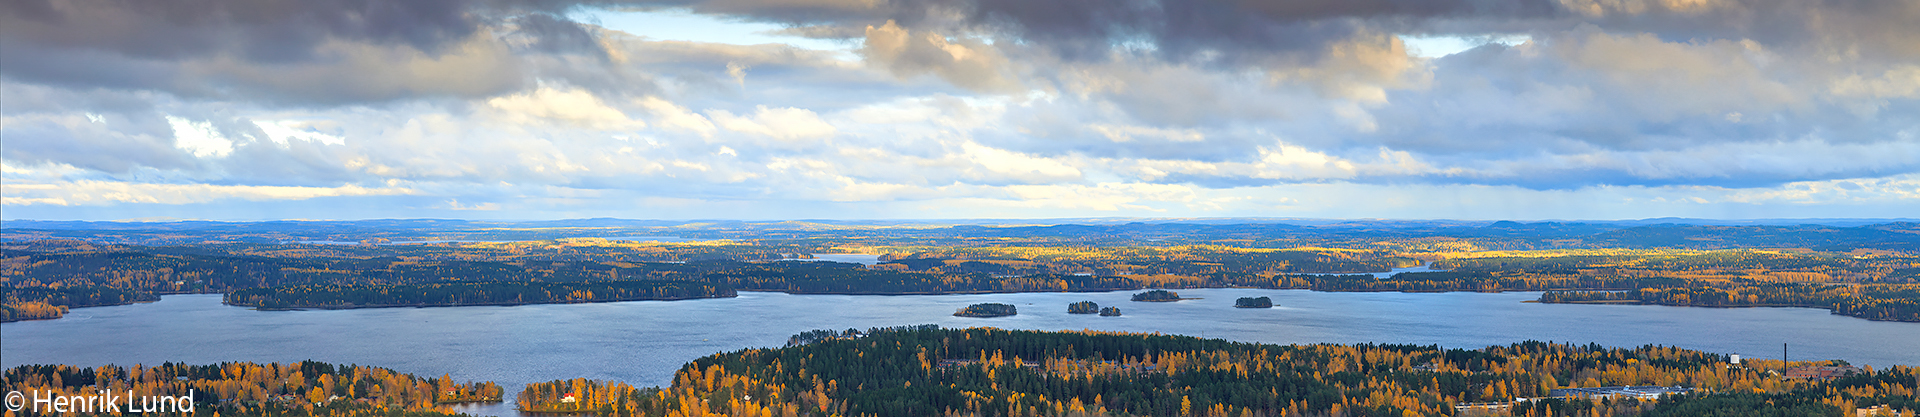 Panorama over Kuopio and Kallavesi. October 2017.